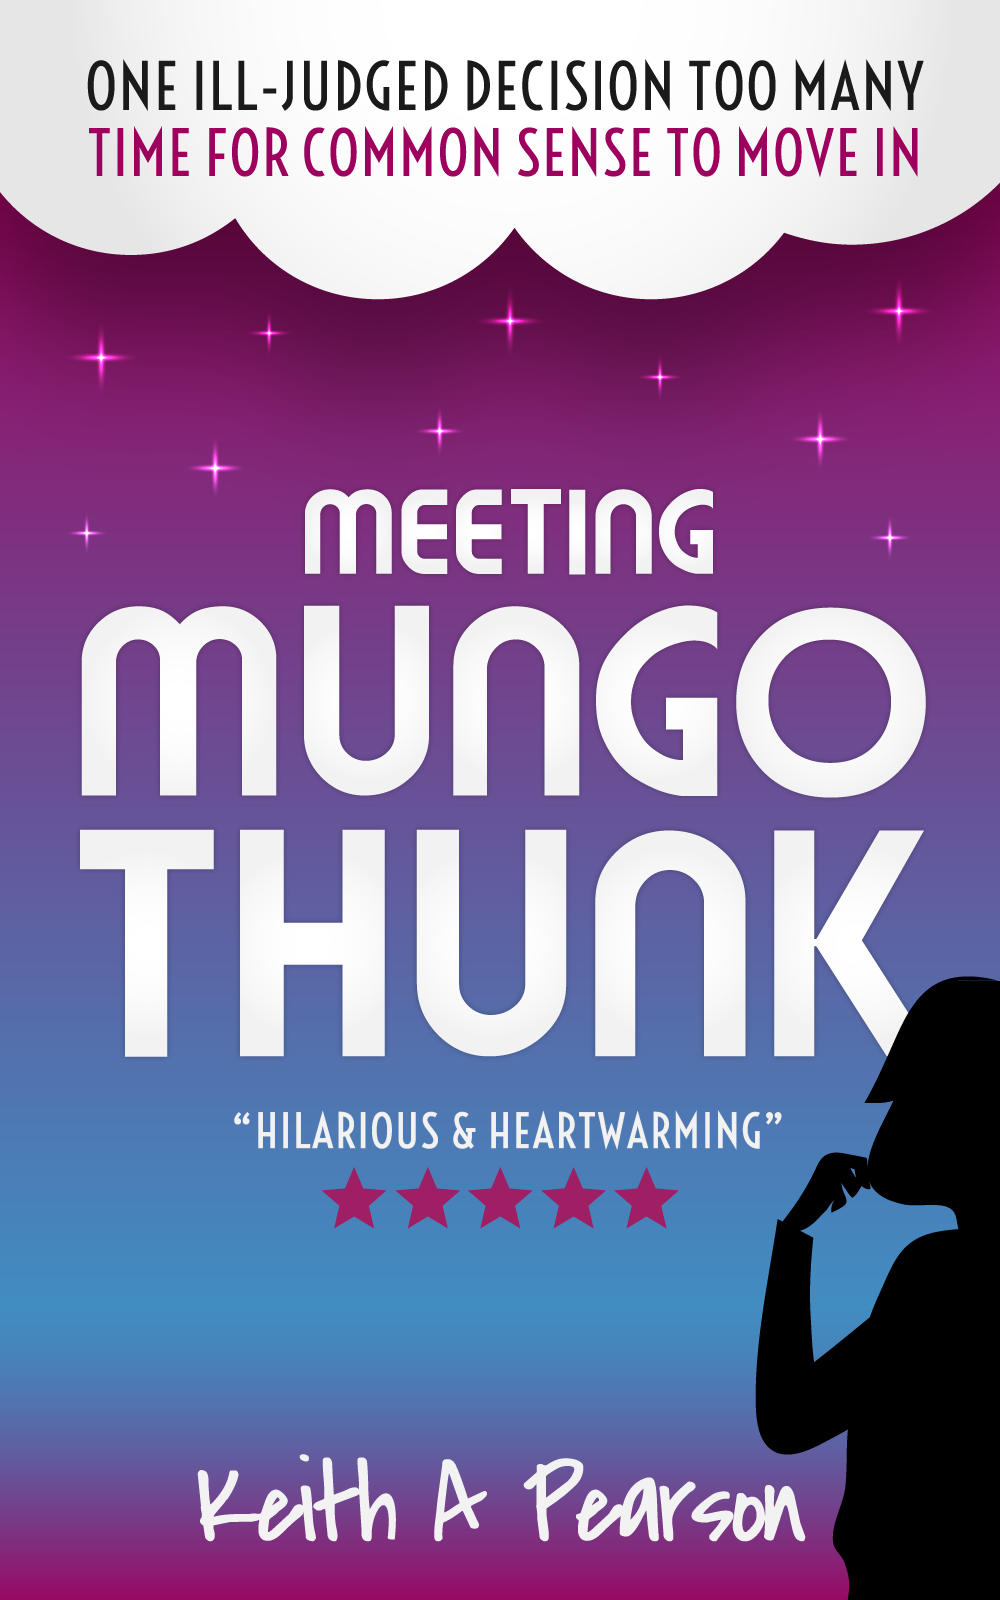 Meeting Mungo Thunk by Keith A Pearson